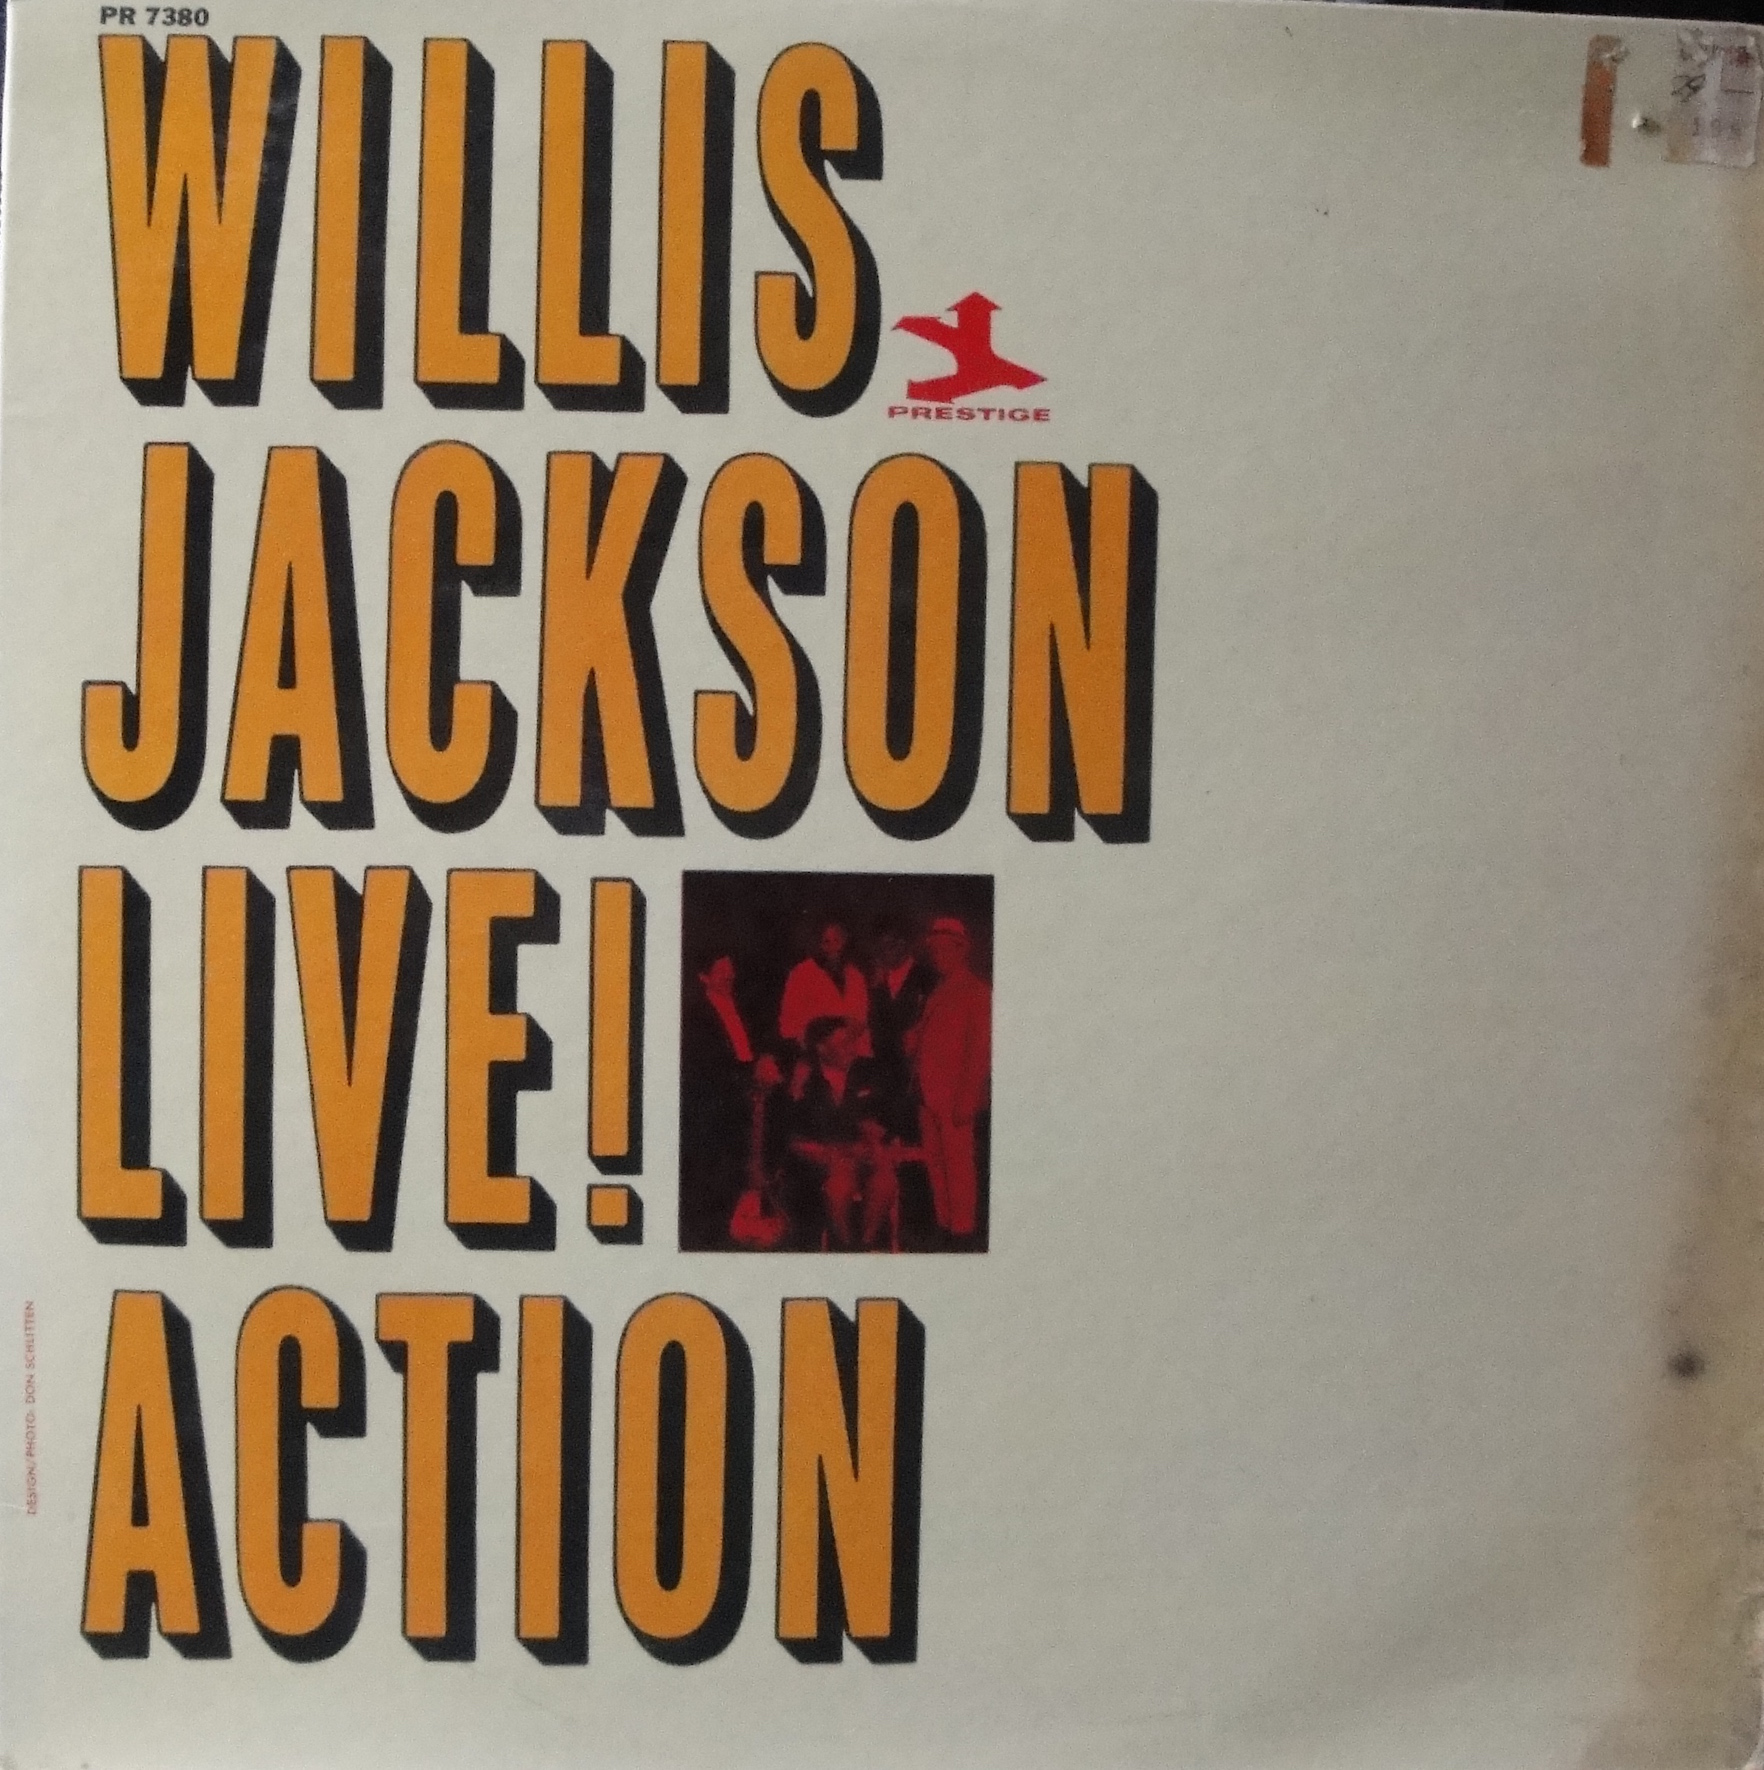 Willis Jackson - Live! Action